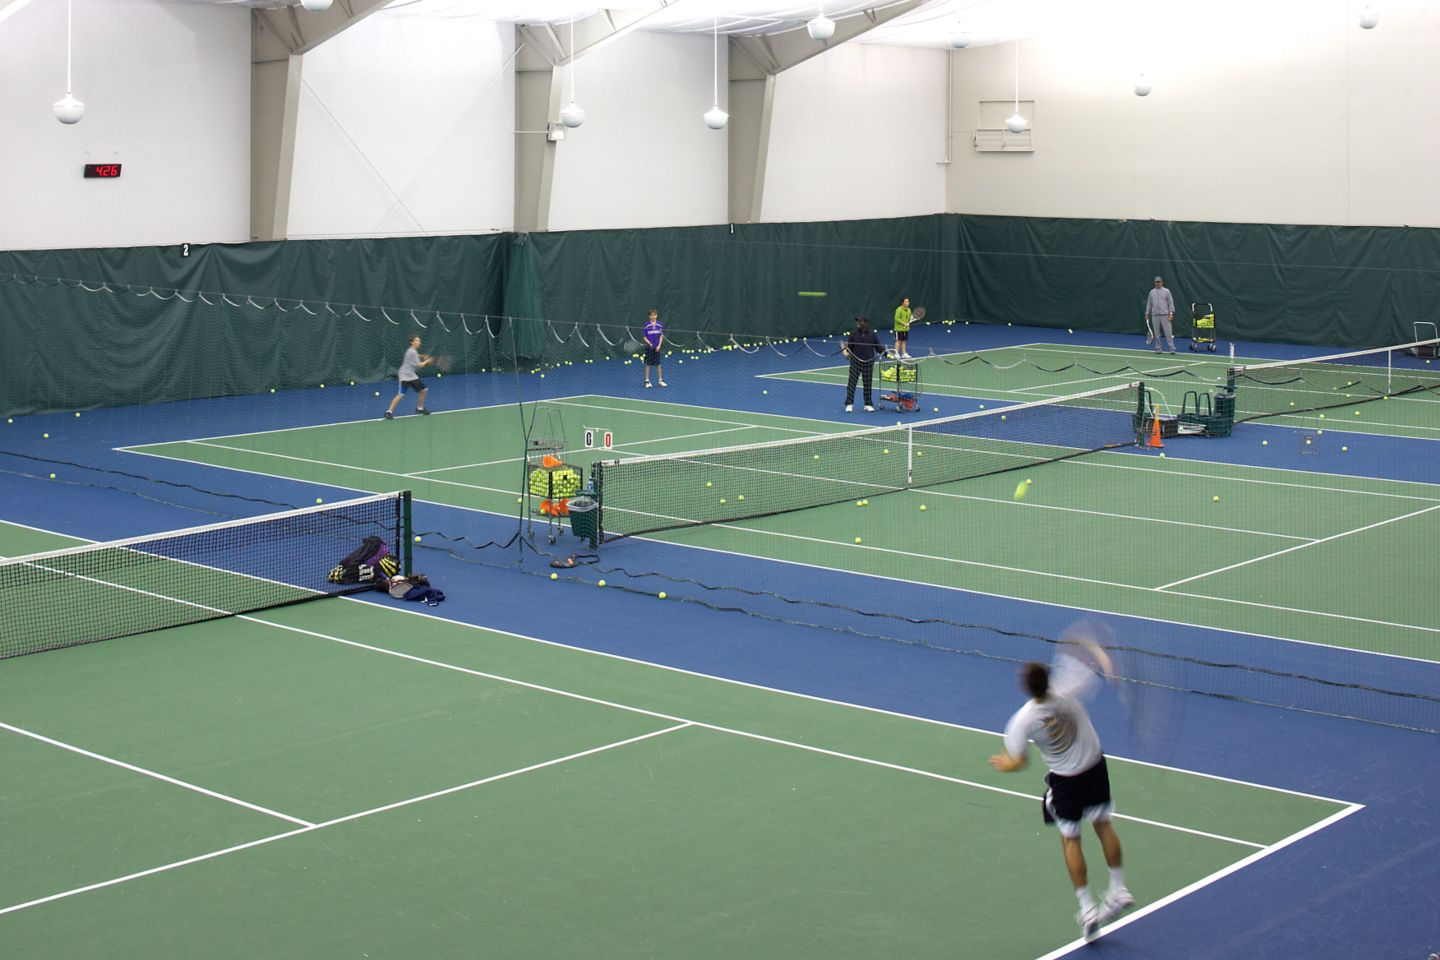 Sports Core indoor tennis courts